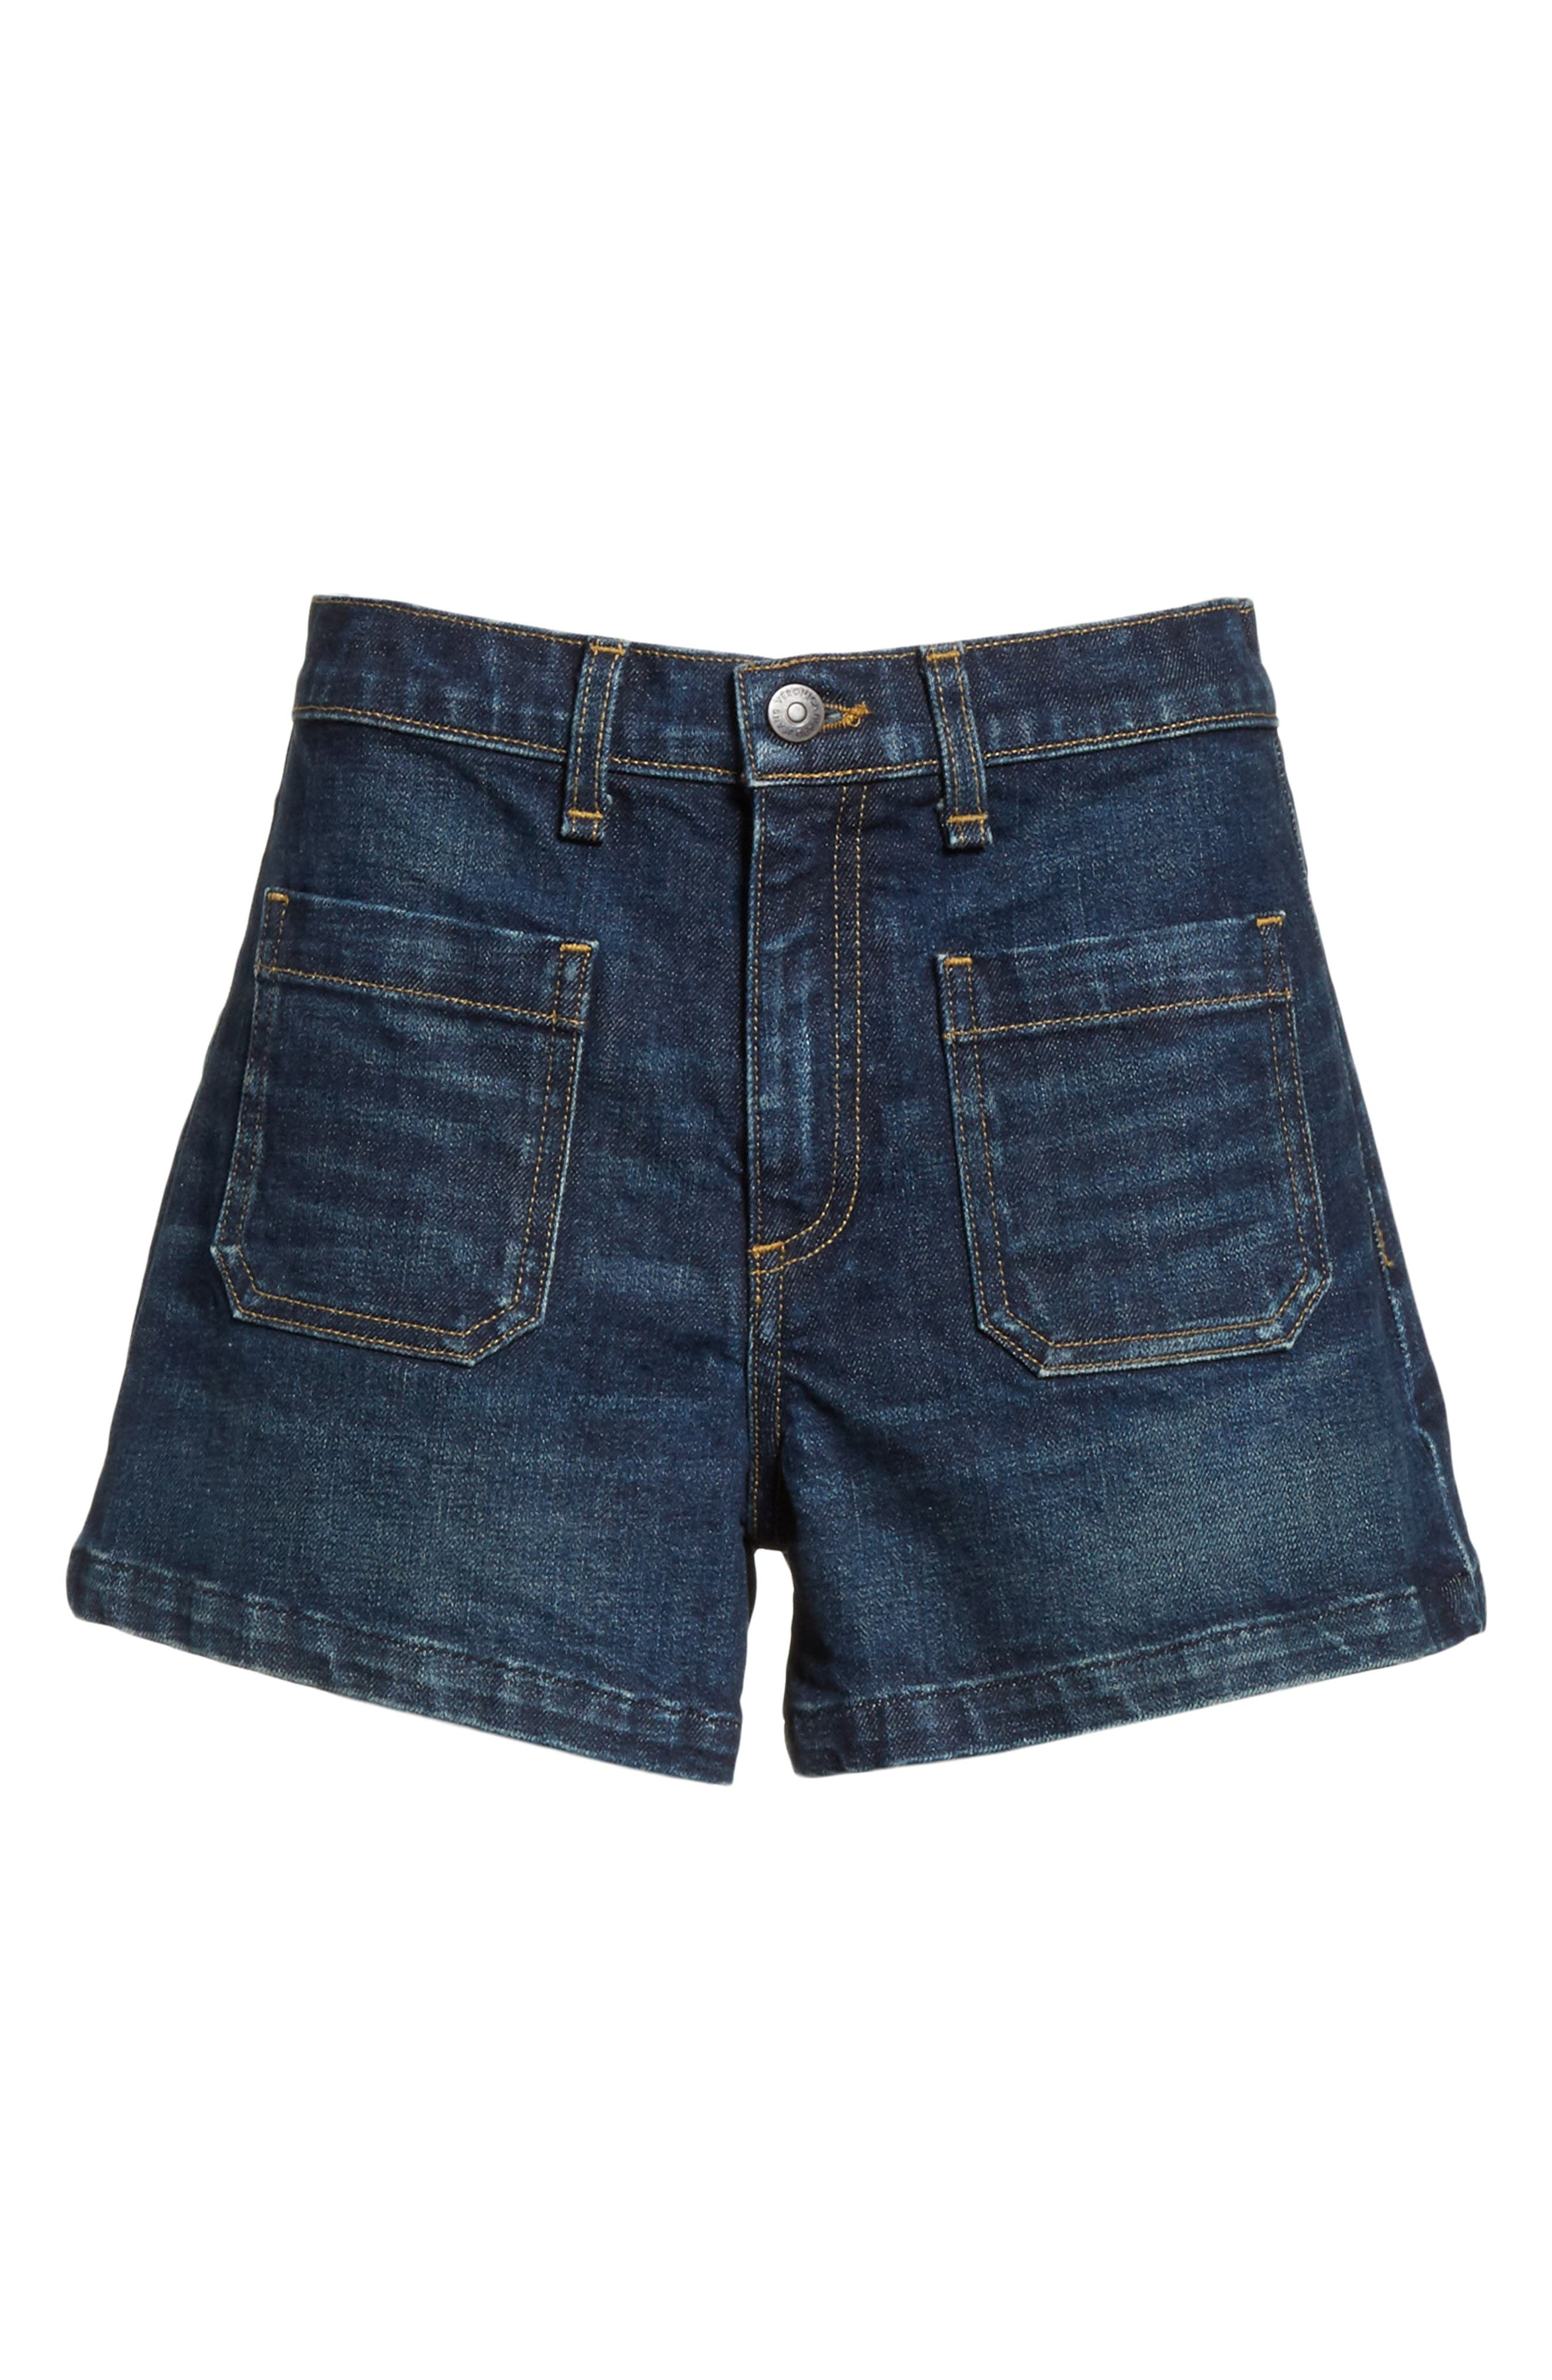 Florence Denim Shorts,                             Alternate thumbnail 6, color,                             Dark Vintage